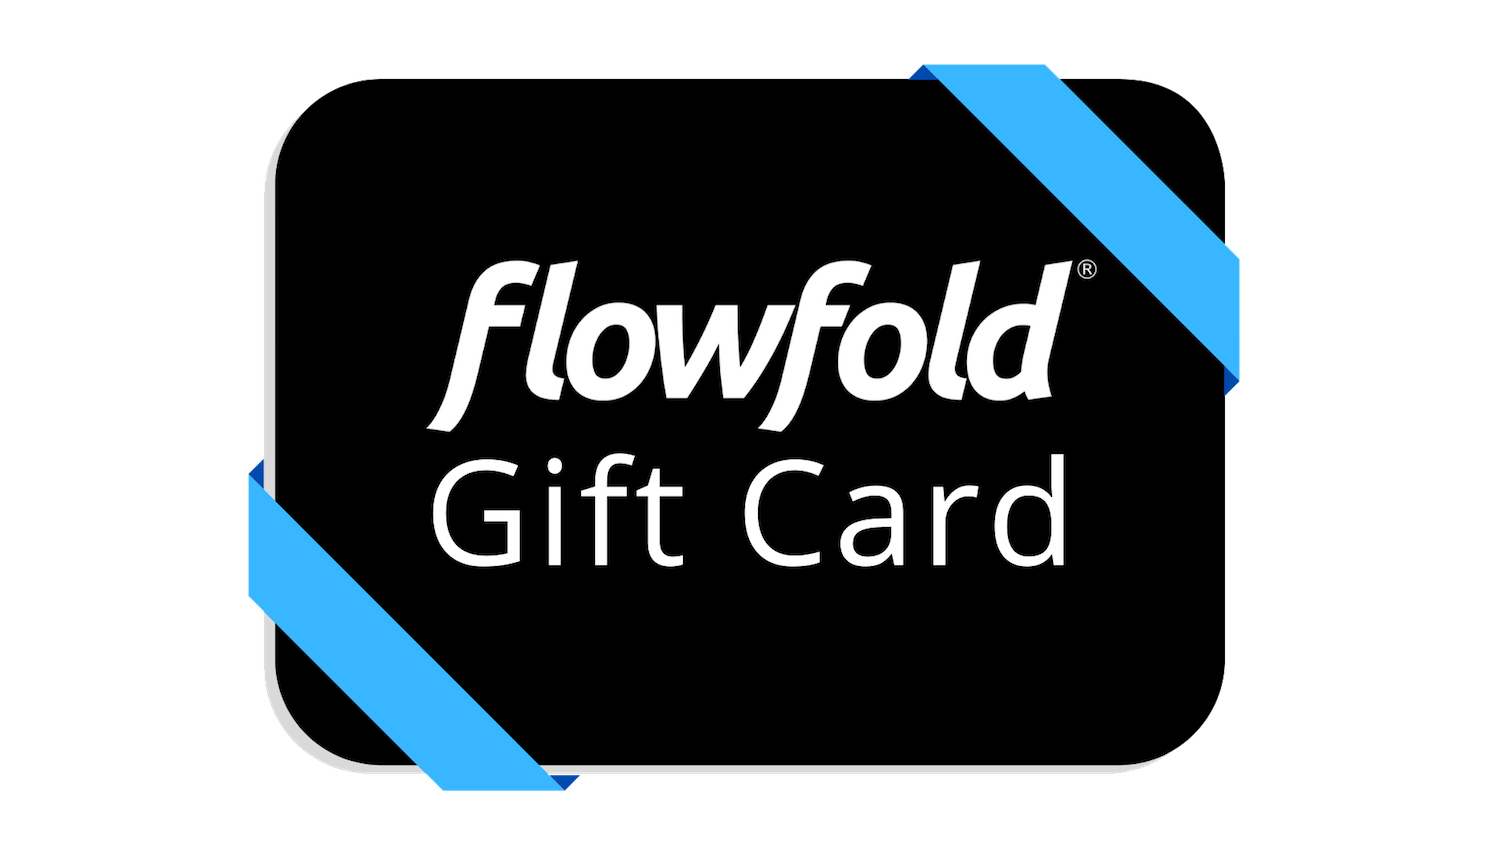 Flowfold digital gift card for any amount